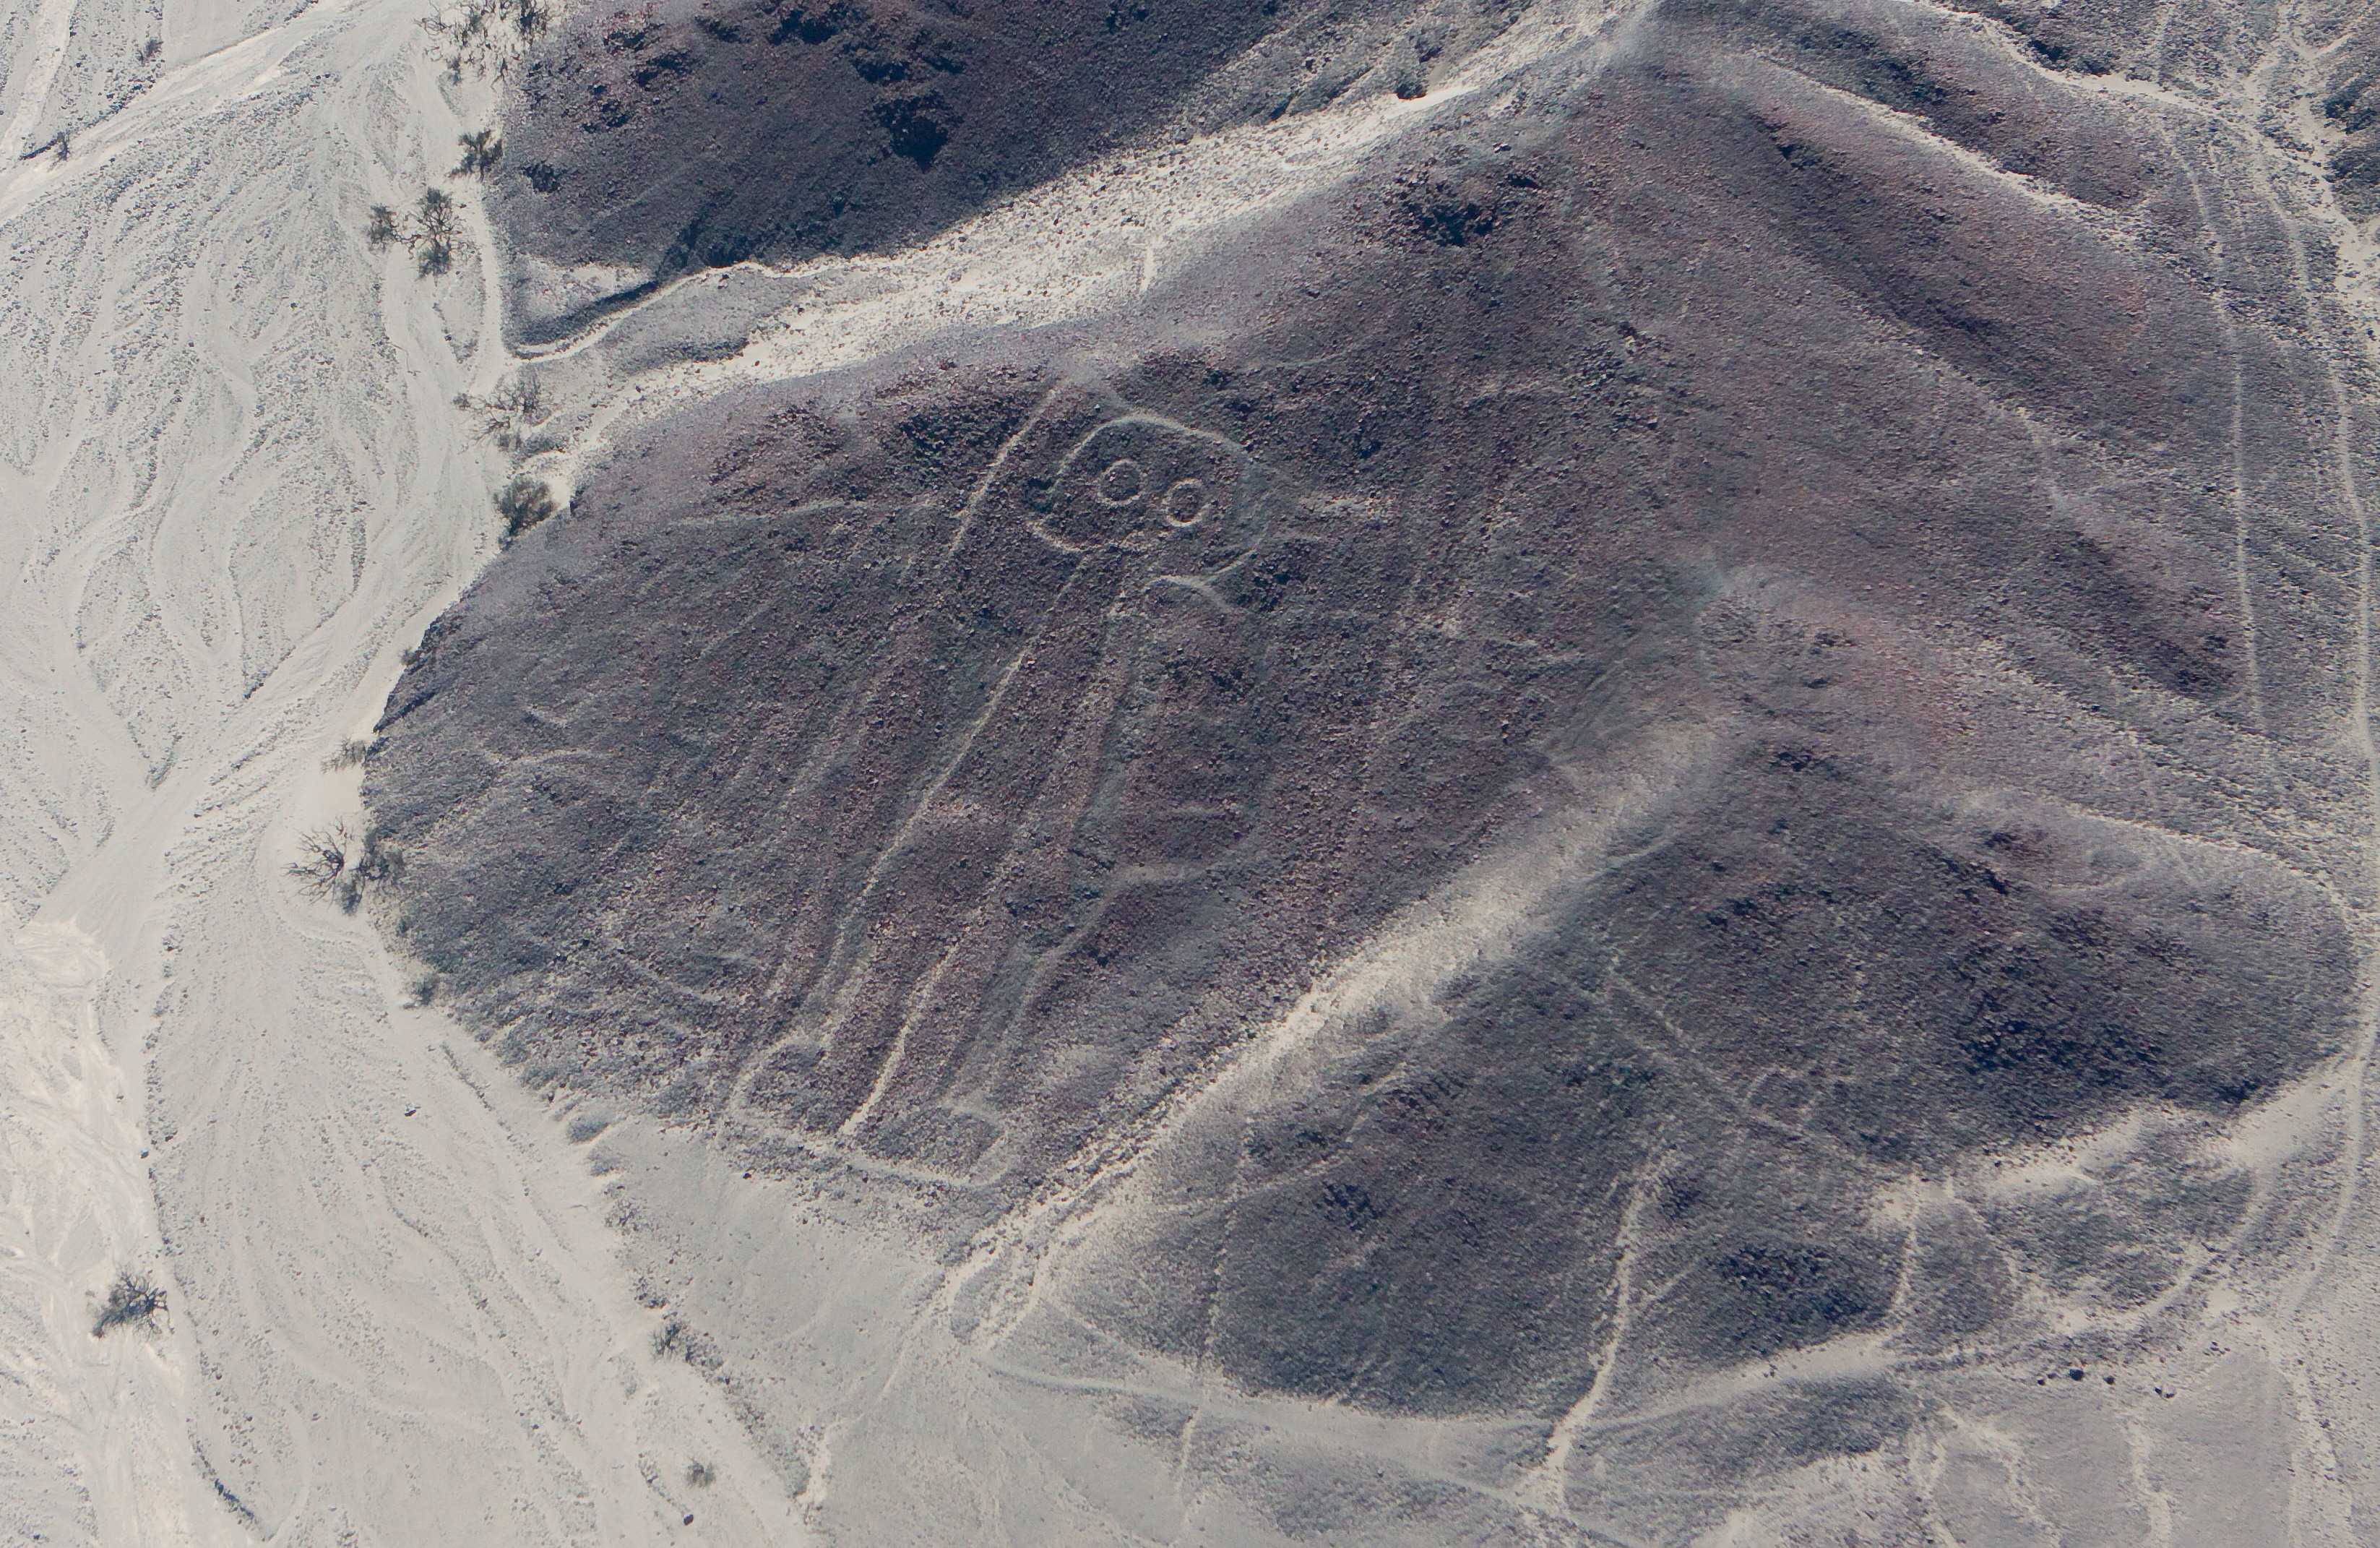 Nazca Lines Astronaut (page 4) - Pics about space